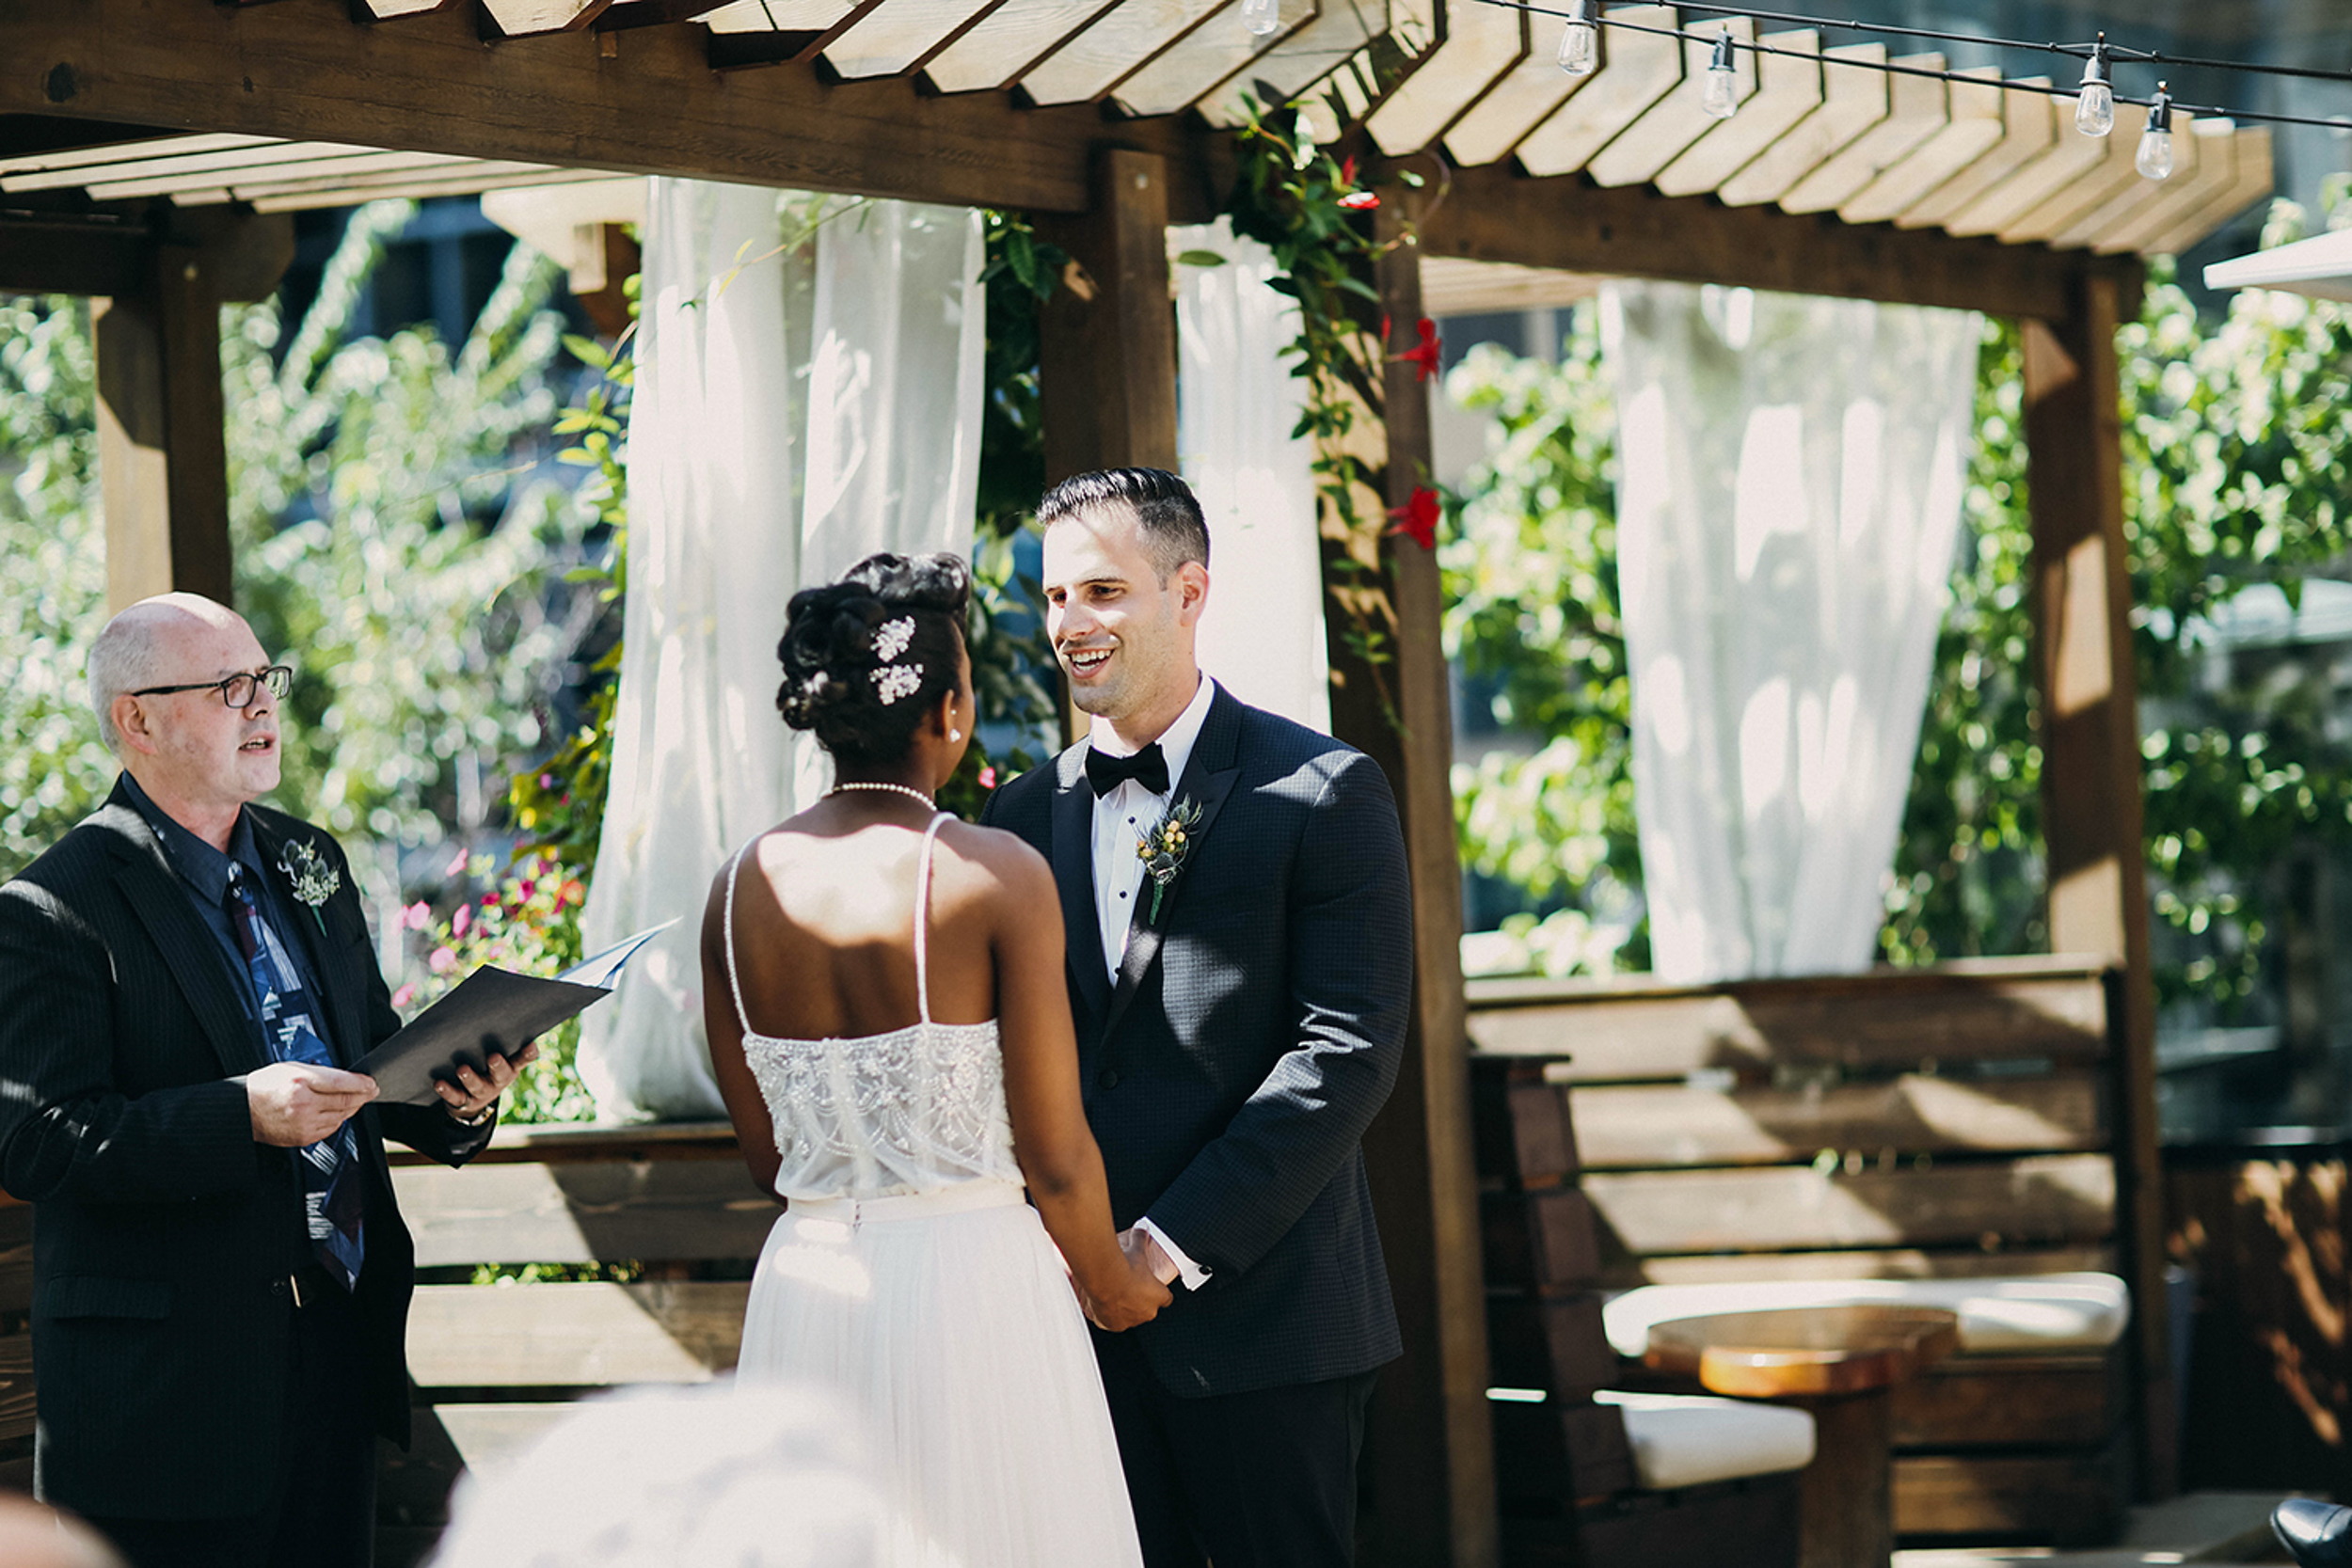 chicago.wedding.urban.intimate.zed451.lake.milton olive park-51.jpg